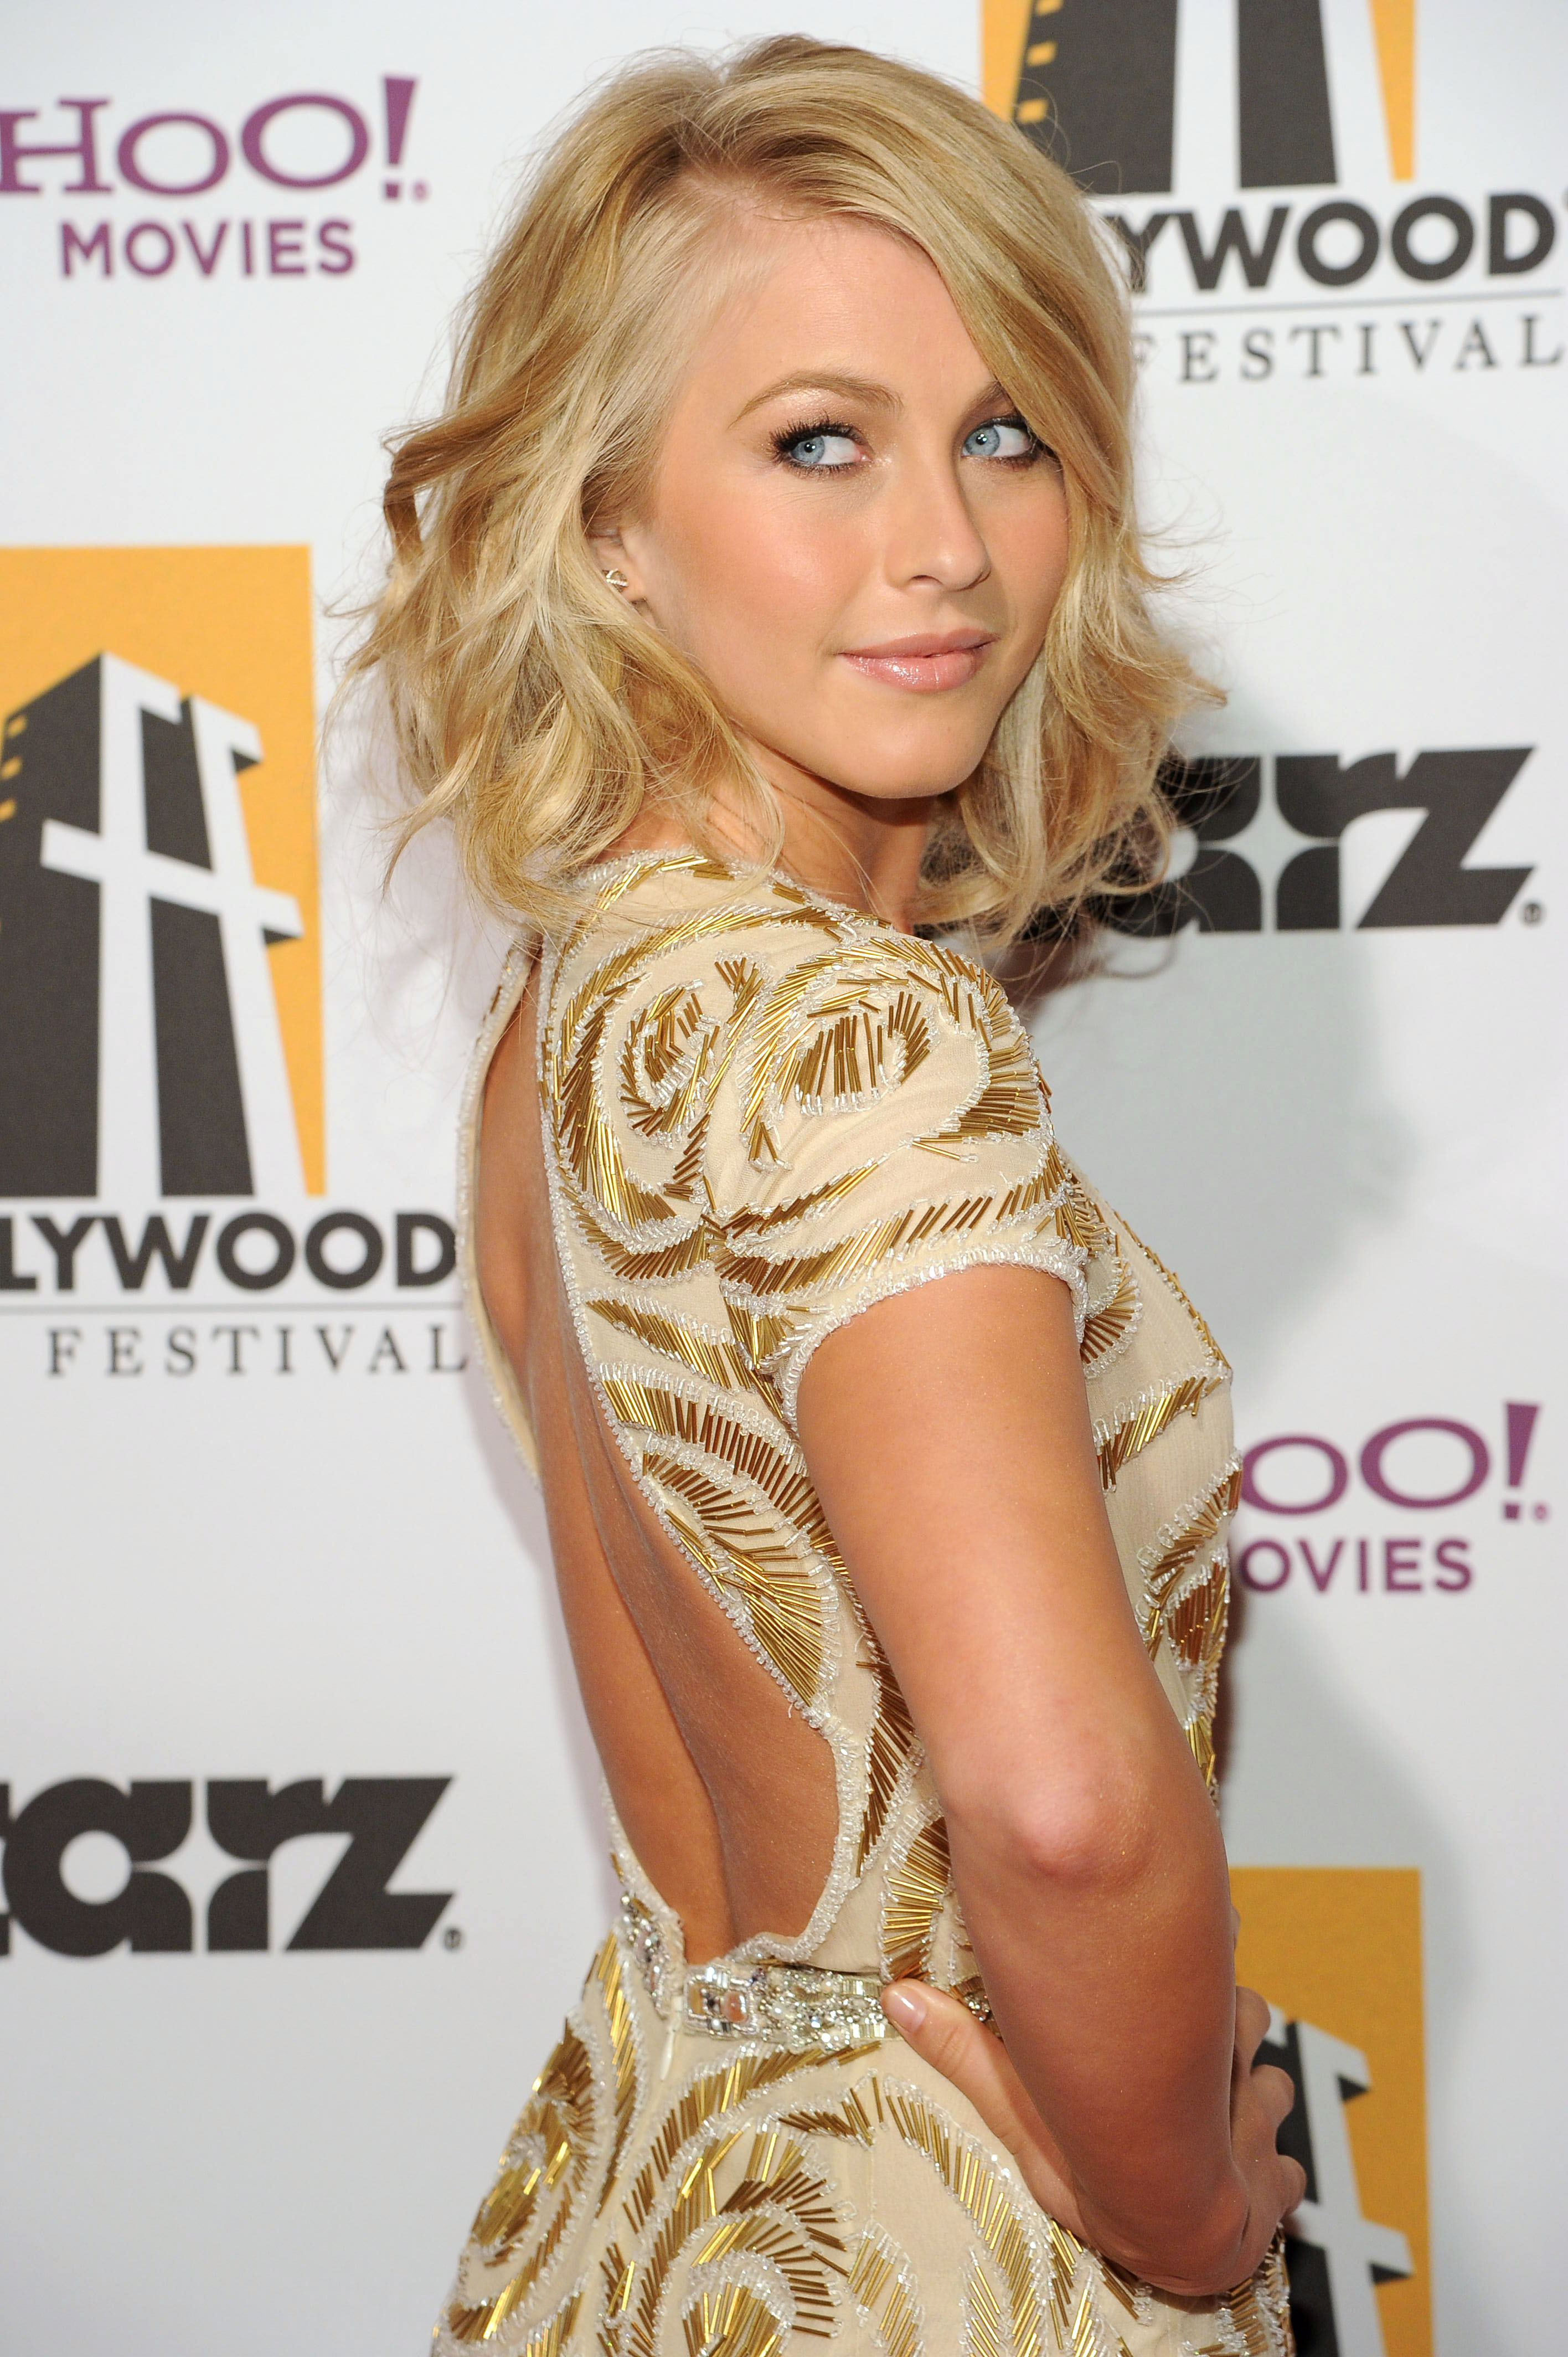 Cleavage Julianne Hough nude photos 2019